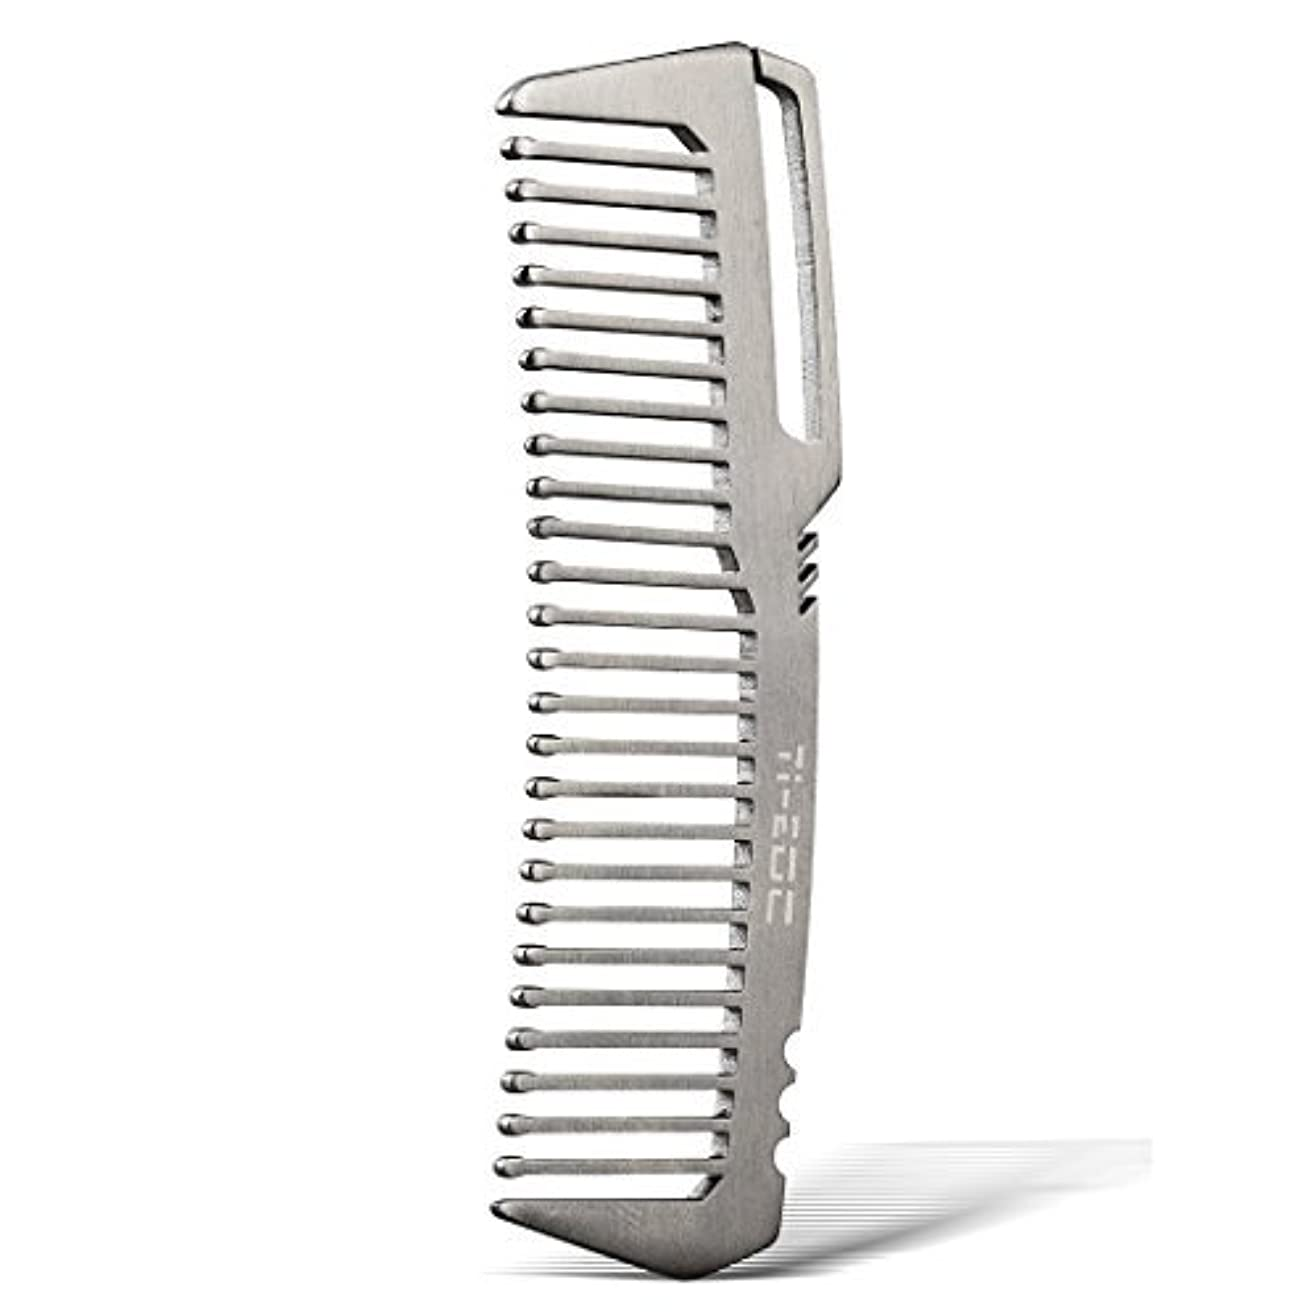 アリス効能写真を撮るTI-EDC Titanium Hair Beared Comb Handmade Premium Eco-friendly Durable Pocket Wallet Comb [並行輸入品]